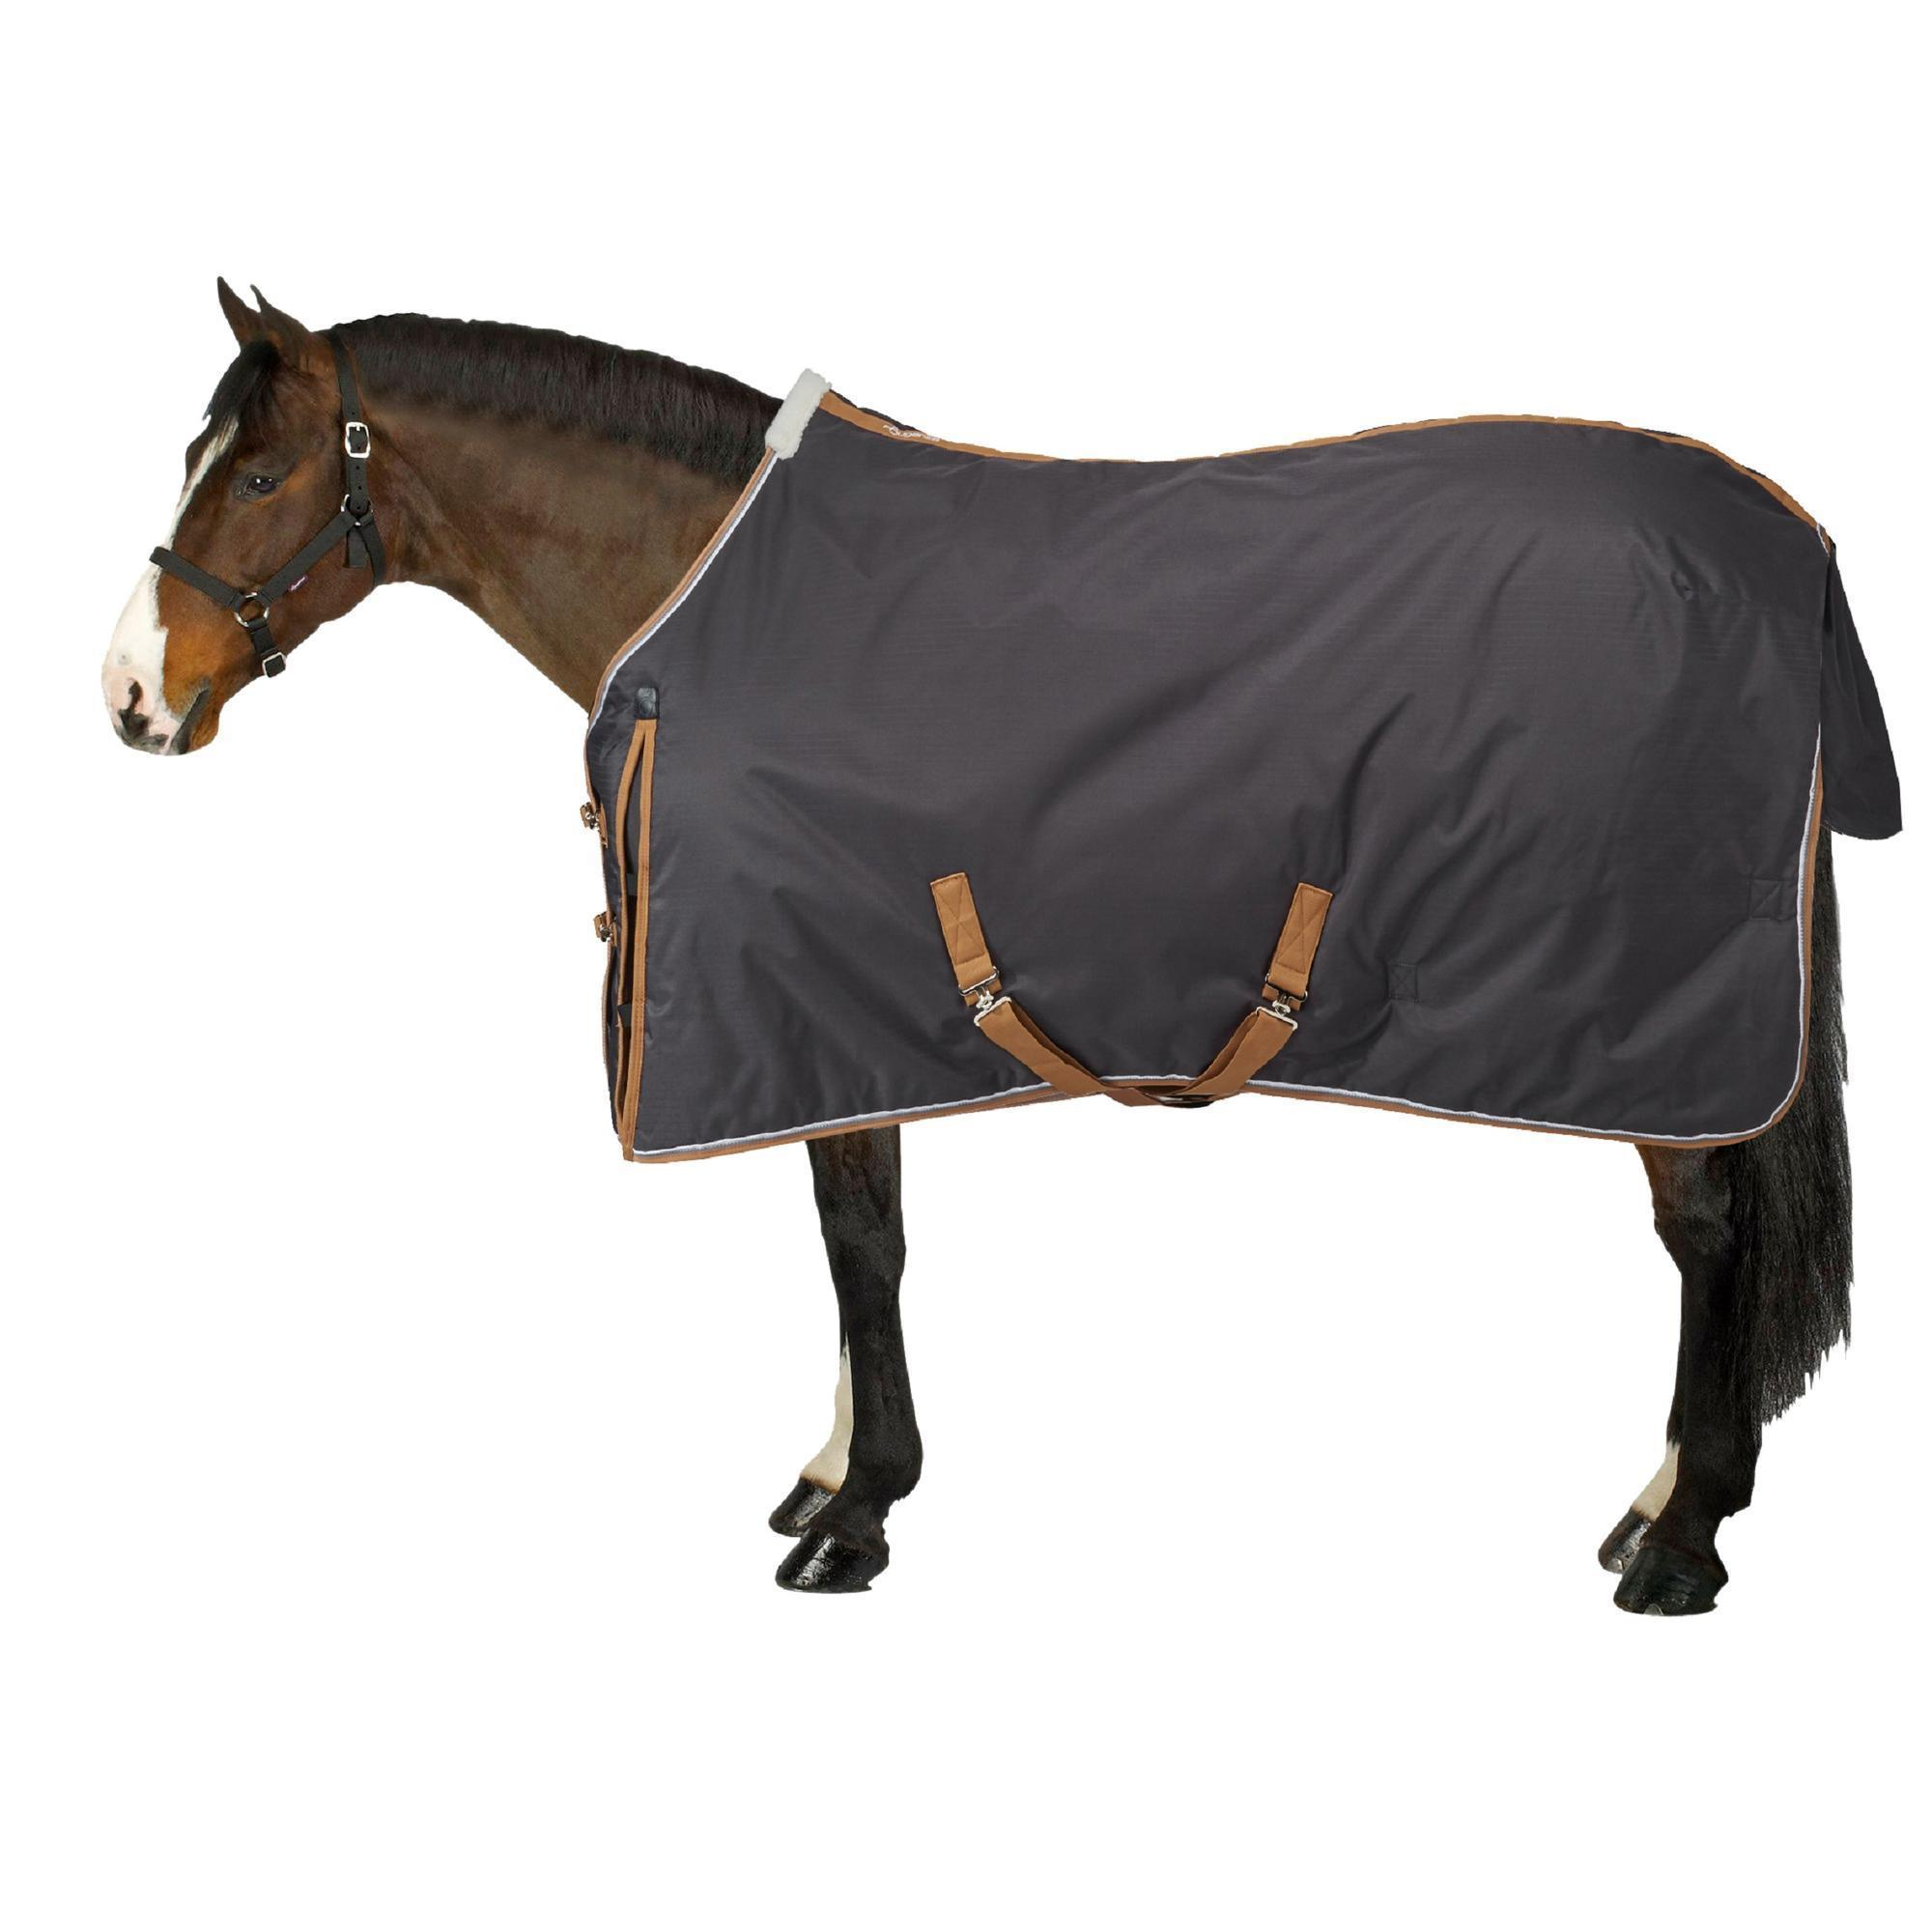 Indoor 200 Horse Riding Stable Rug For Horses Or Ponies